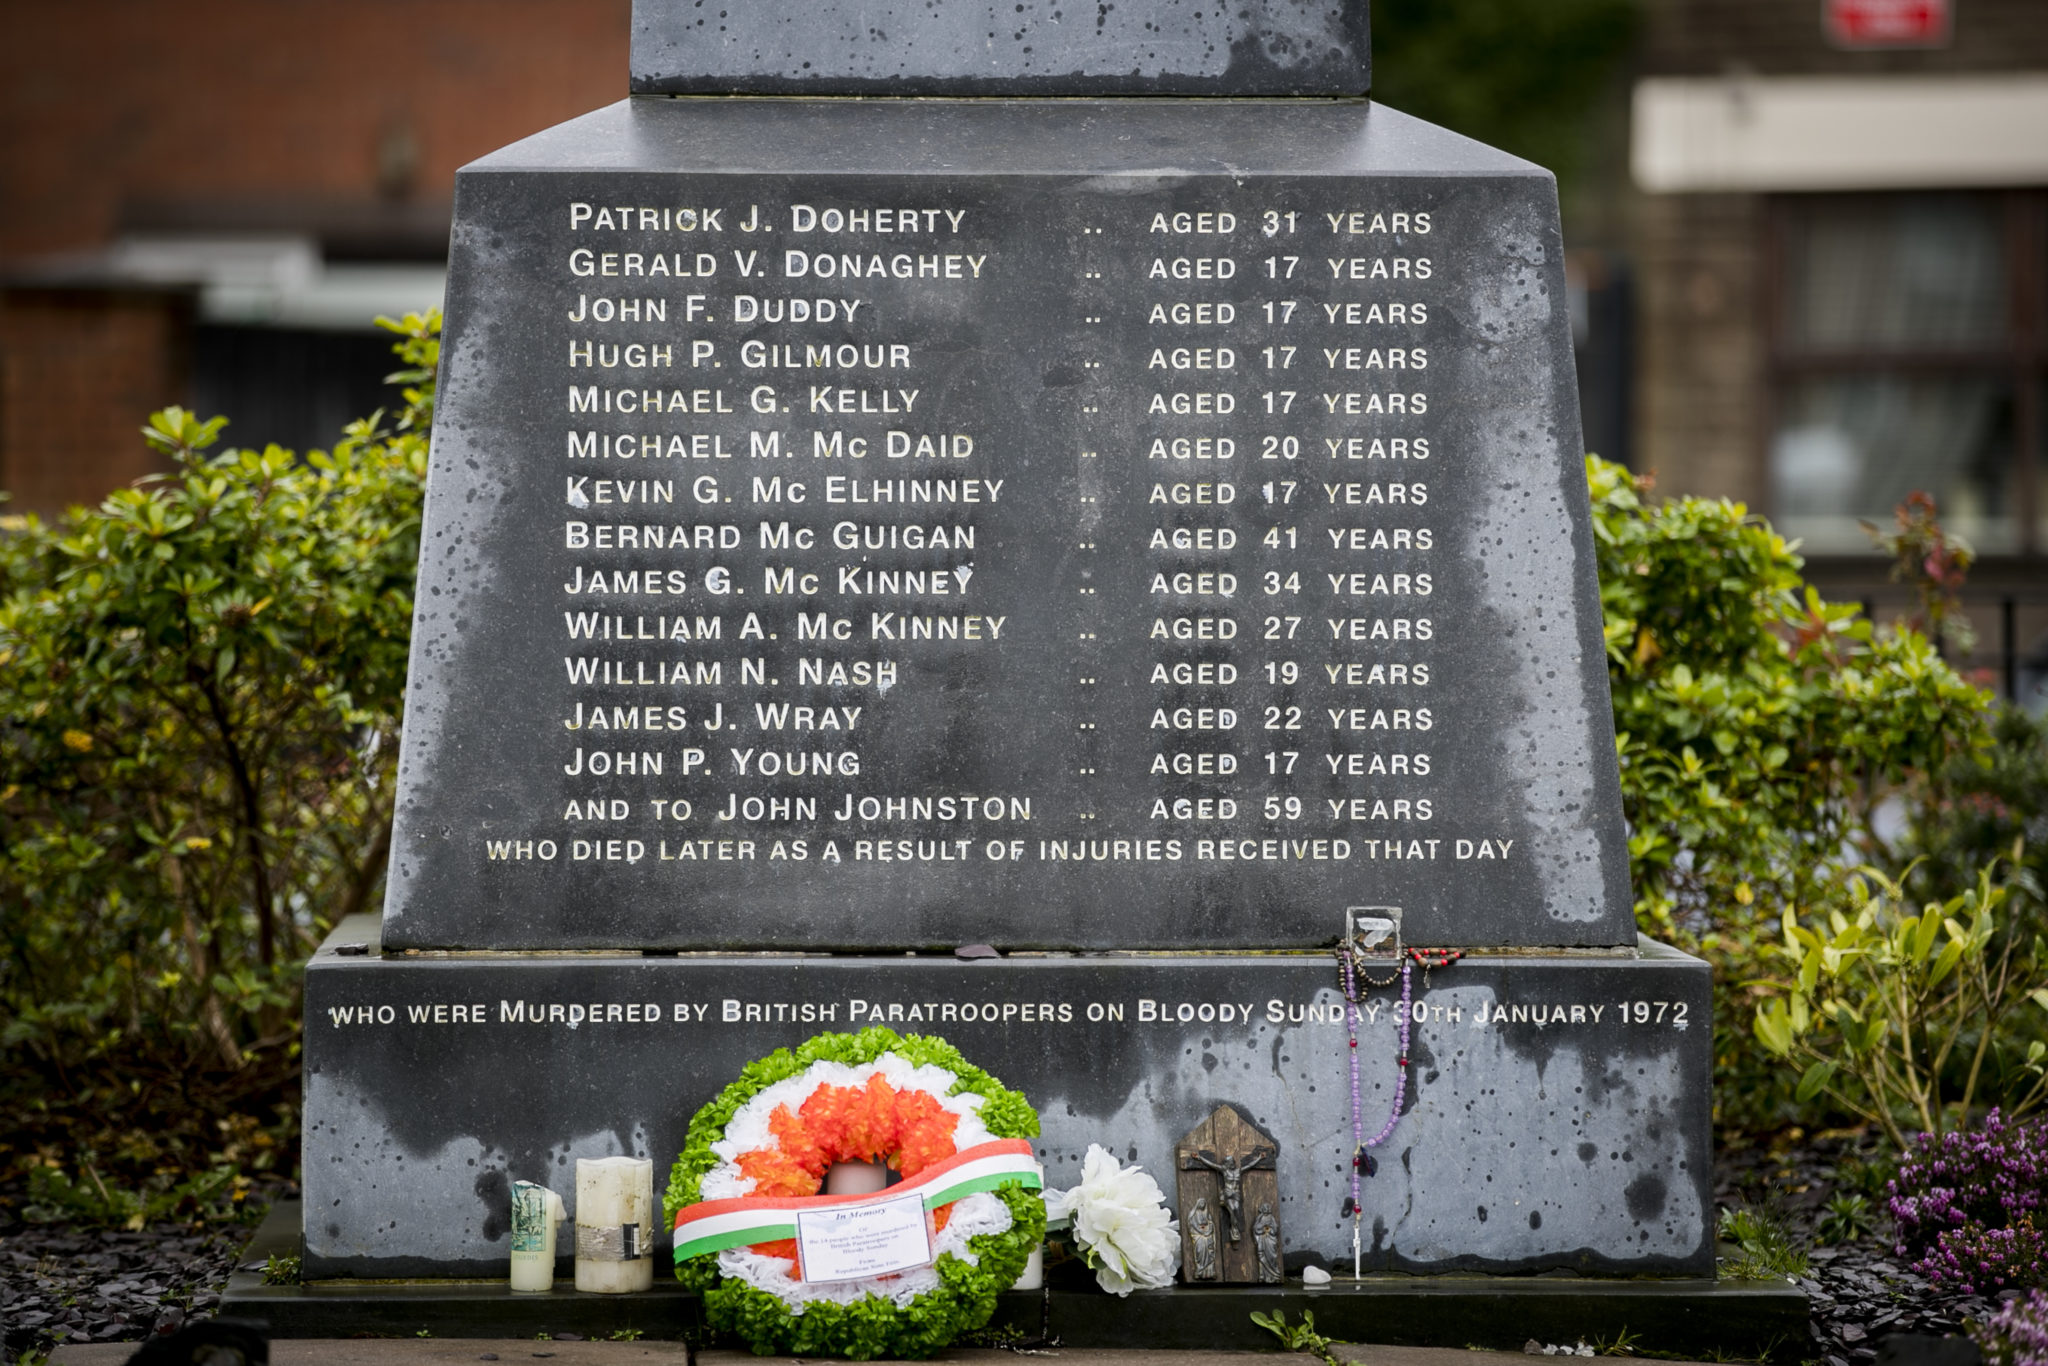 Derry awaits decision on 1972 killings — Bloody Sunday